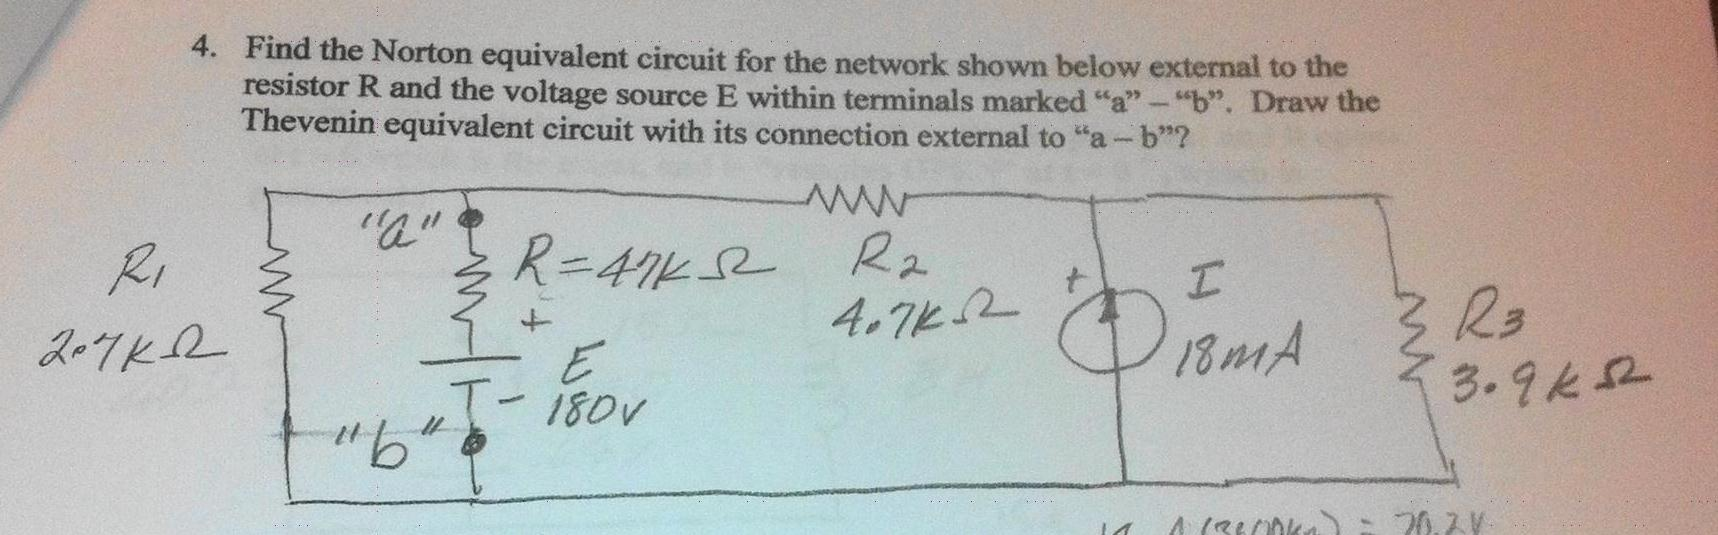 Find the Norton equivalent circuit for the network